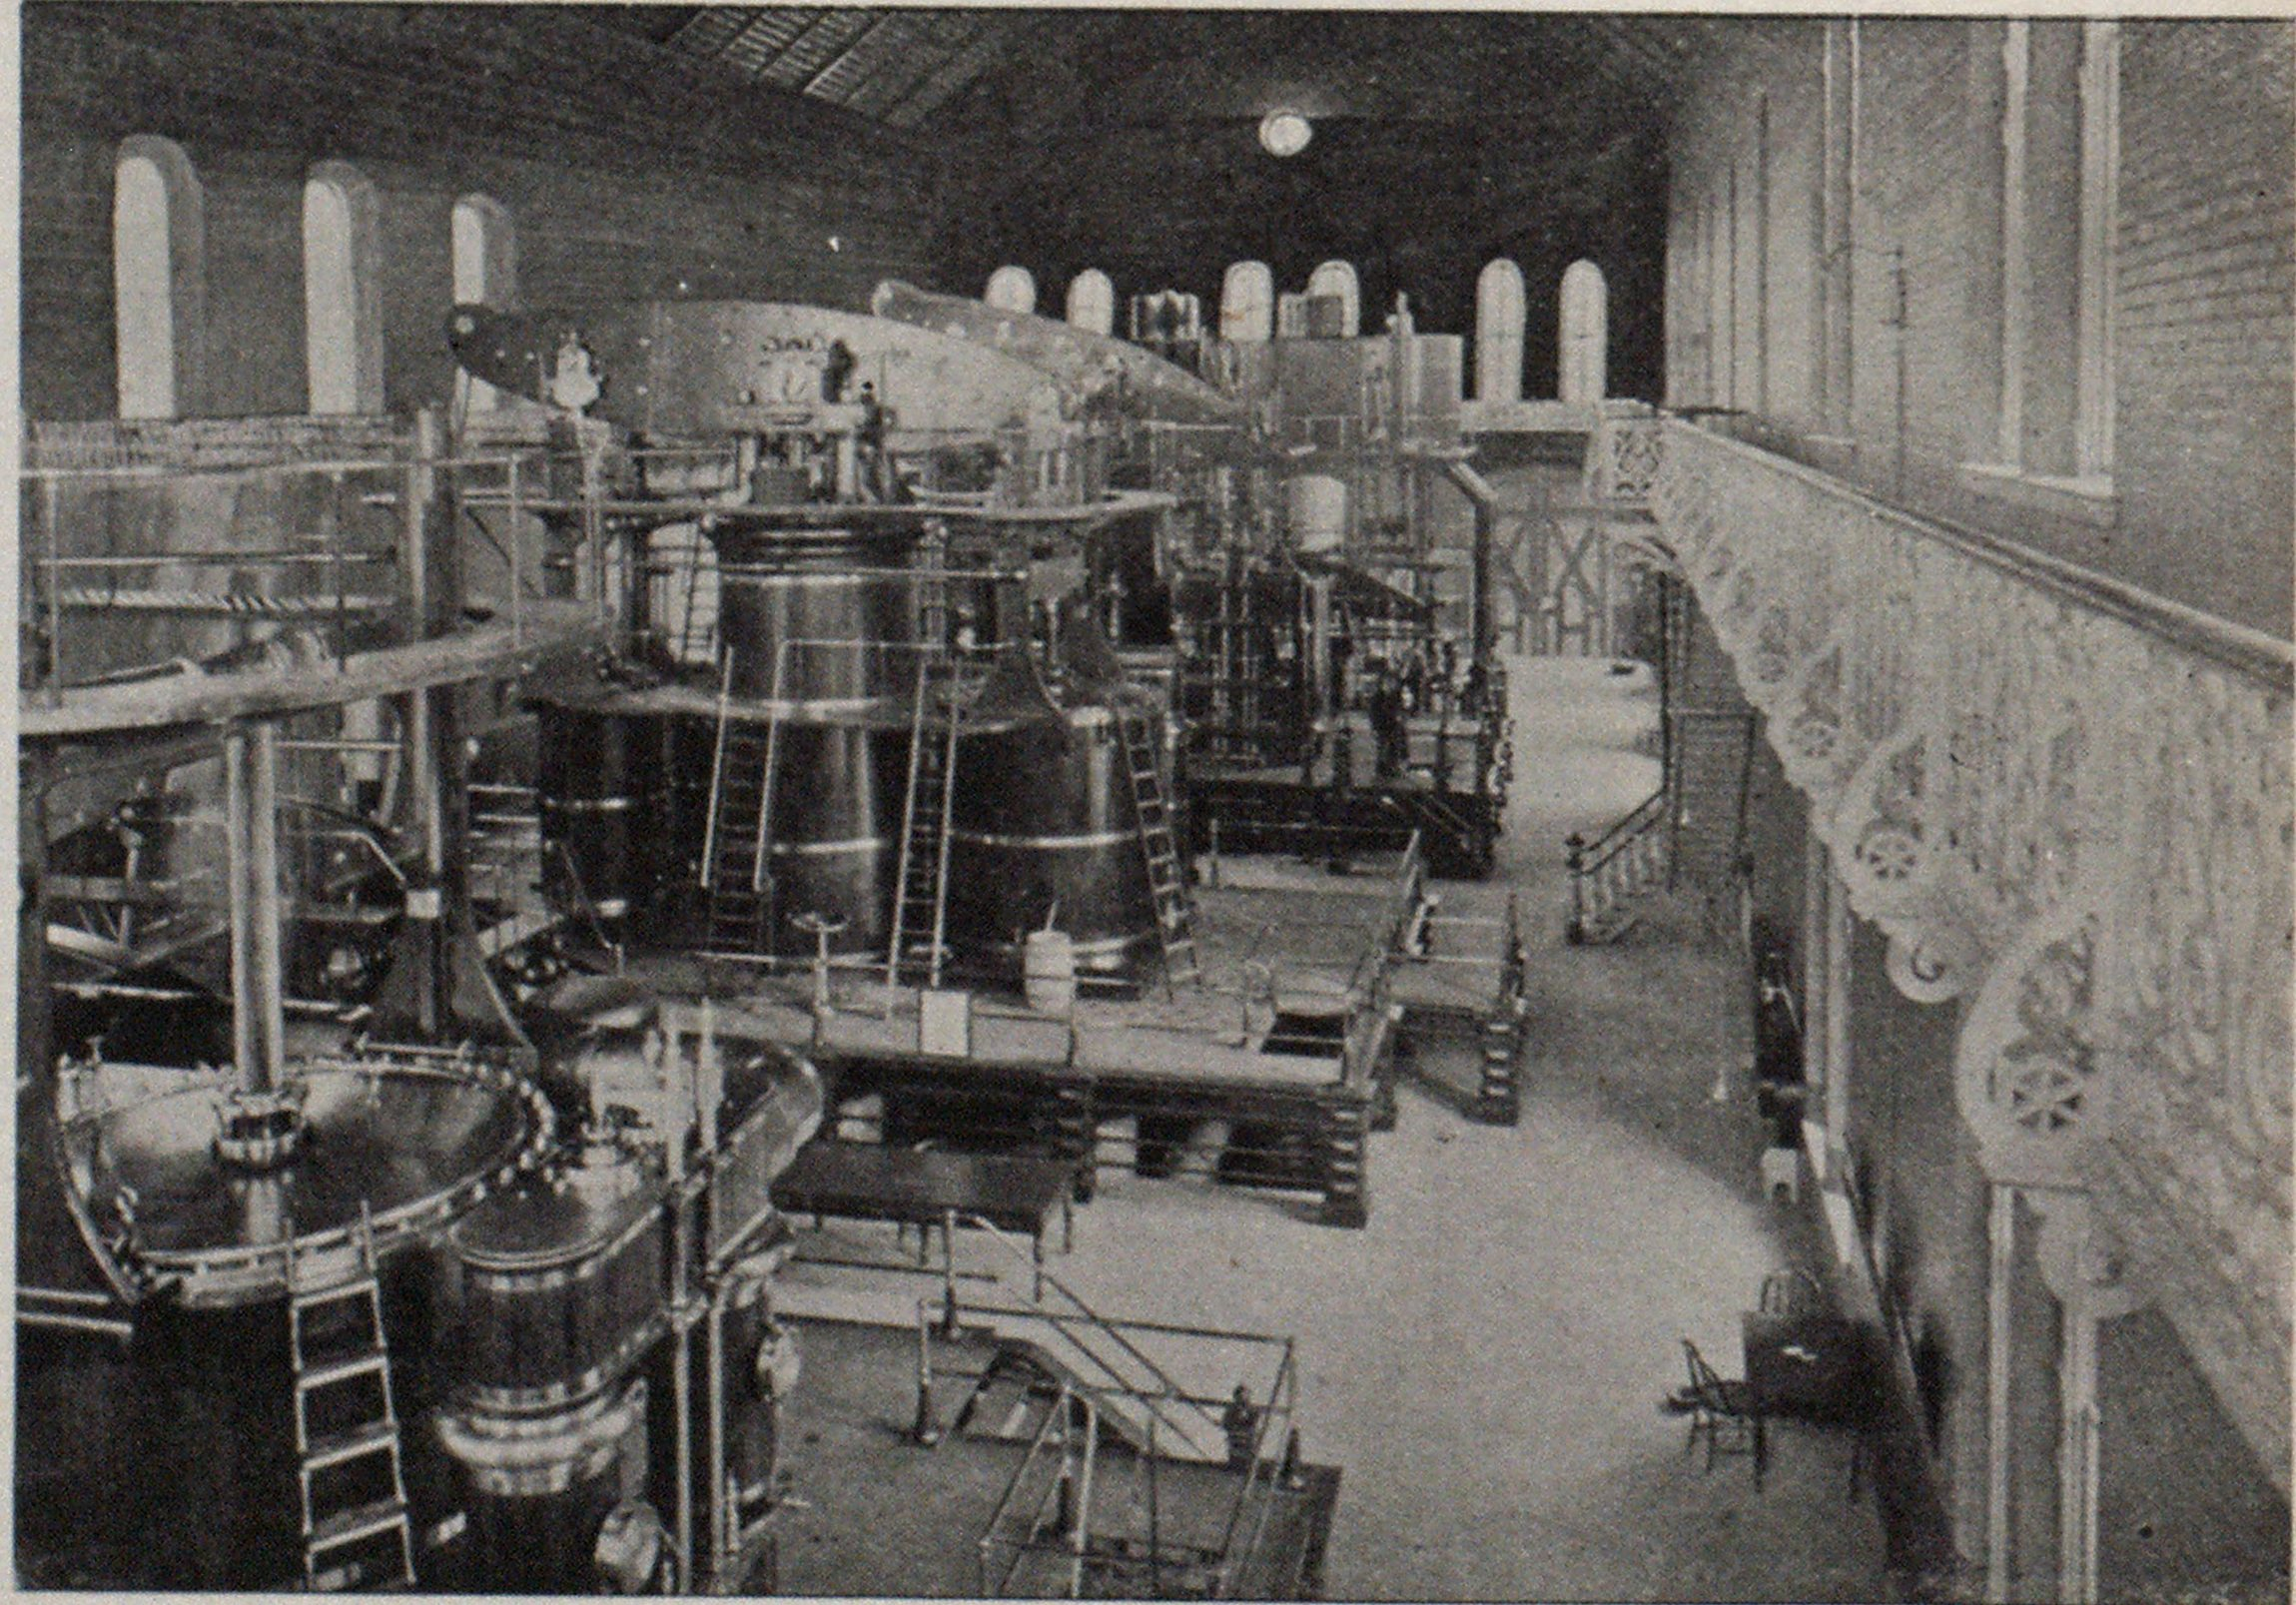 INTERIOR OF PUMPING STATION, DETROIT, MICH.